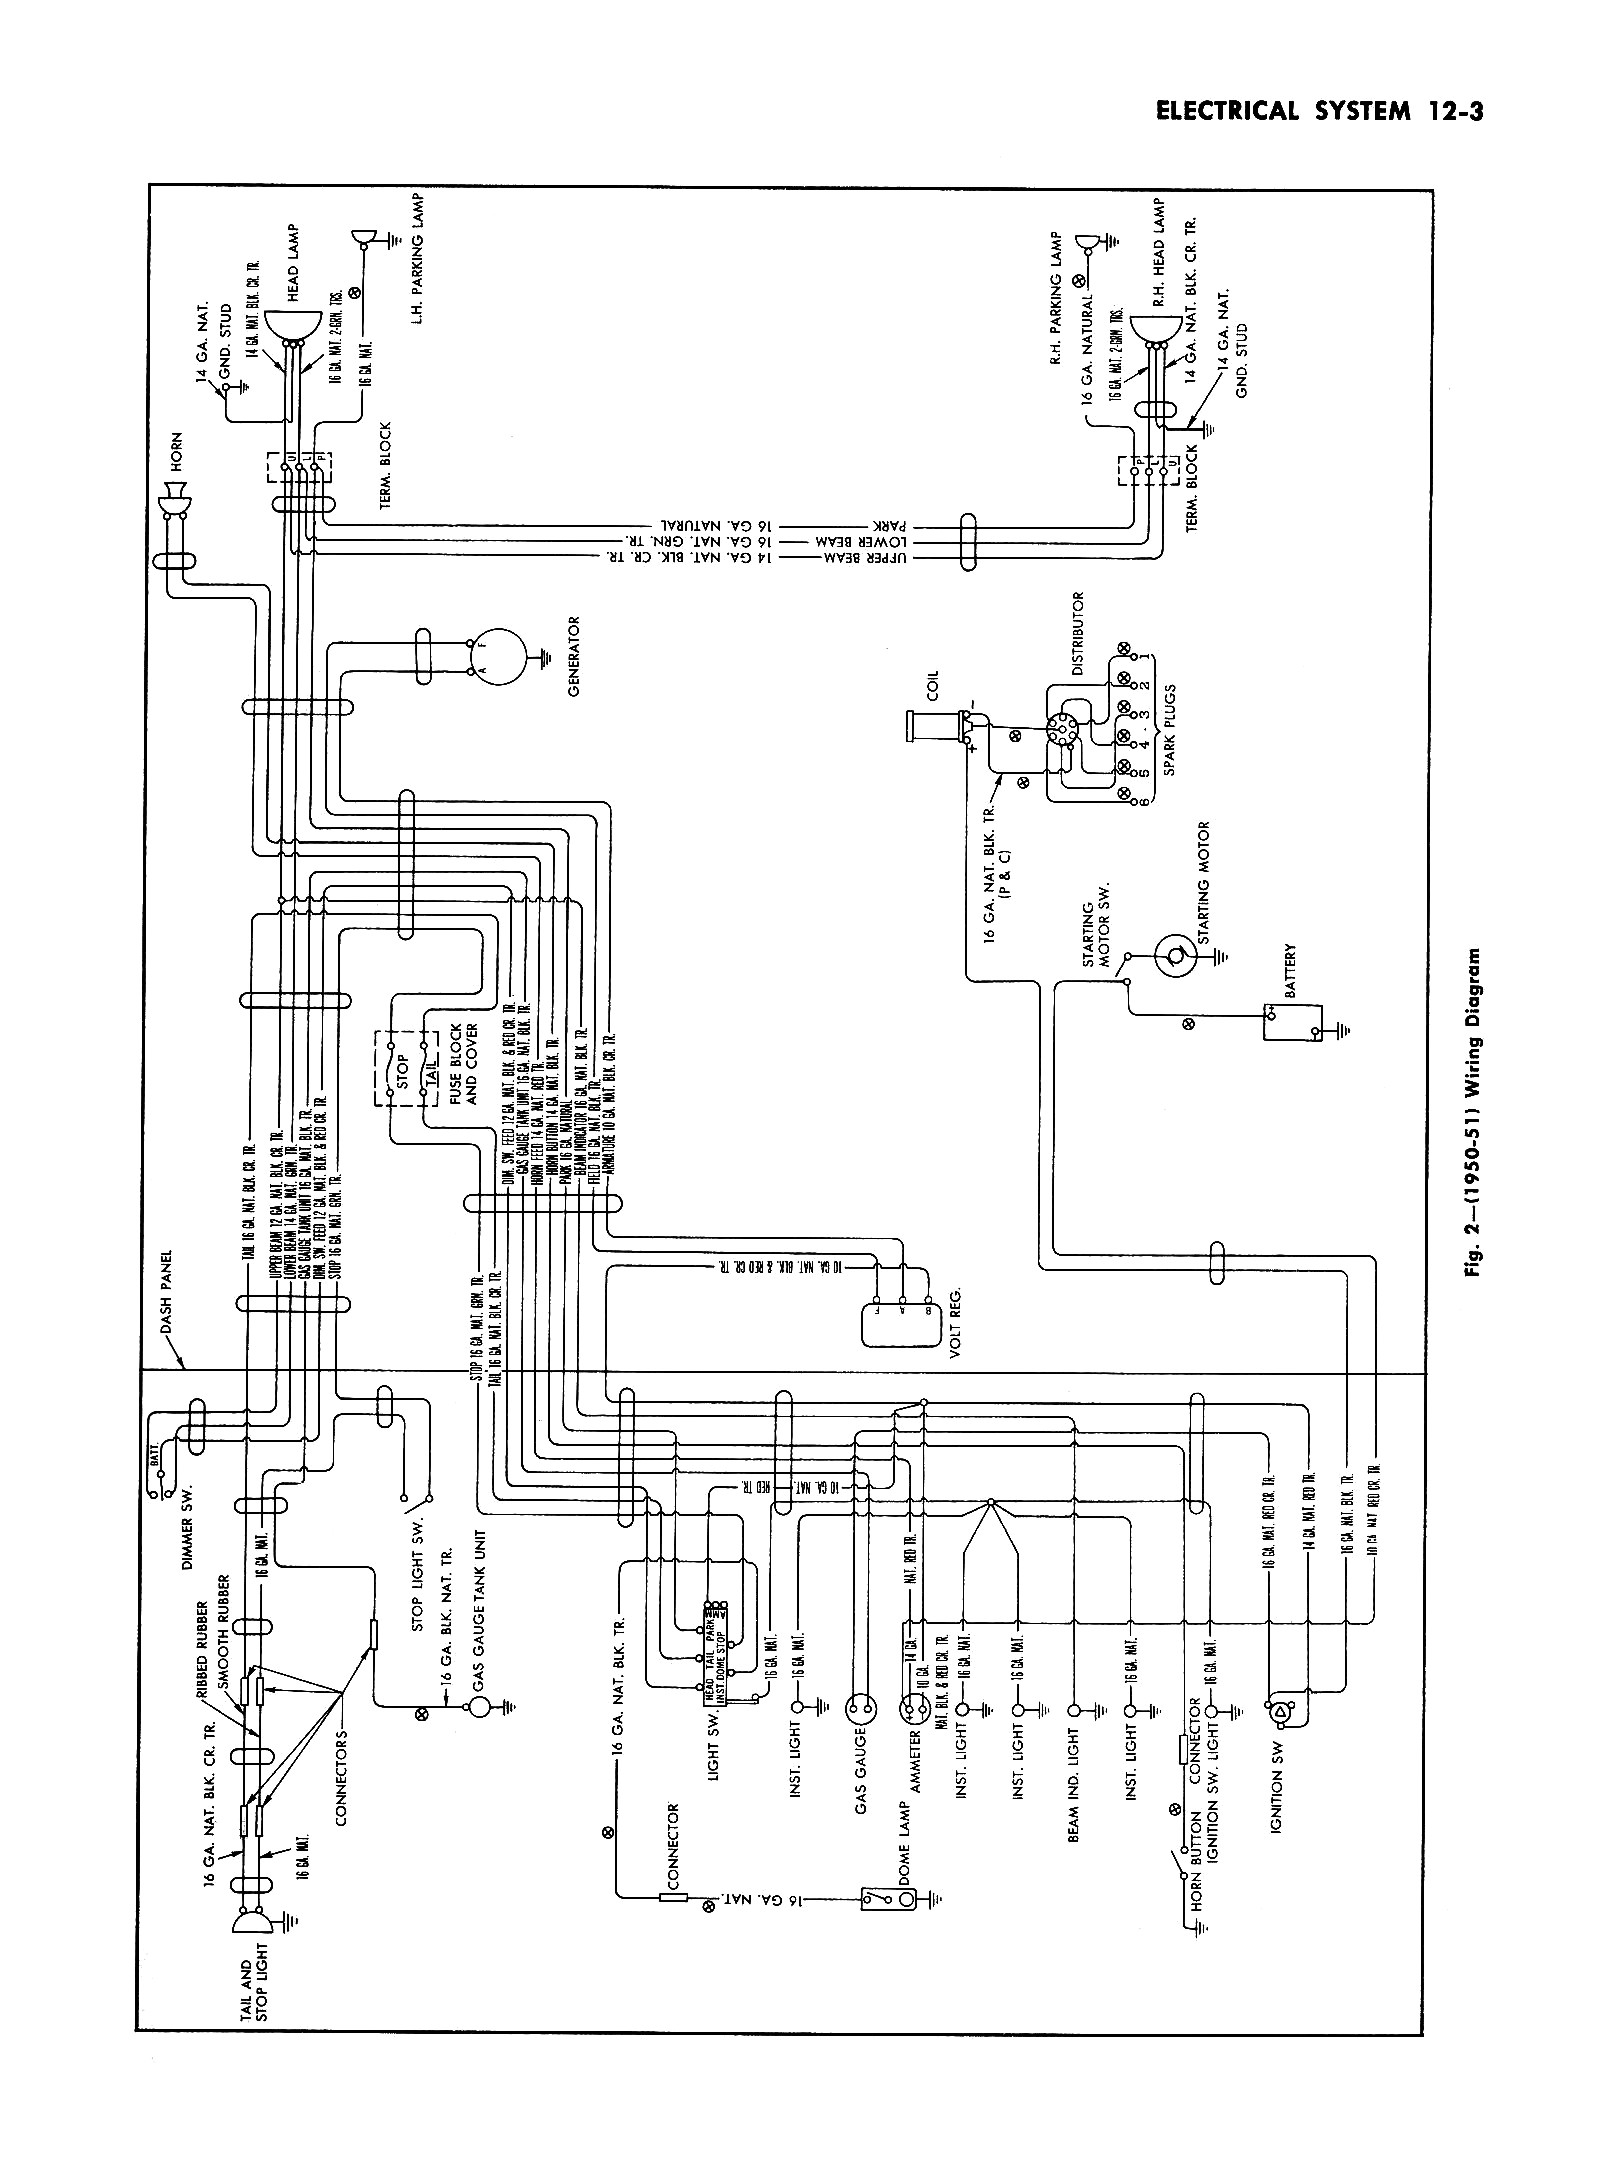 chevy wiring diagrams rh chevy oldcarmanualproject com Chevy Silverado Wiring Diagram 1975 Chevy Alternator Wiring Diagram